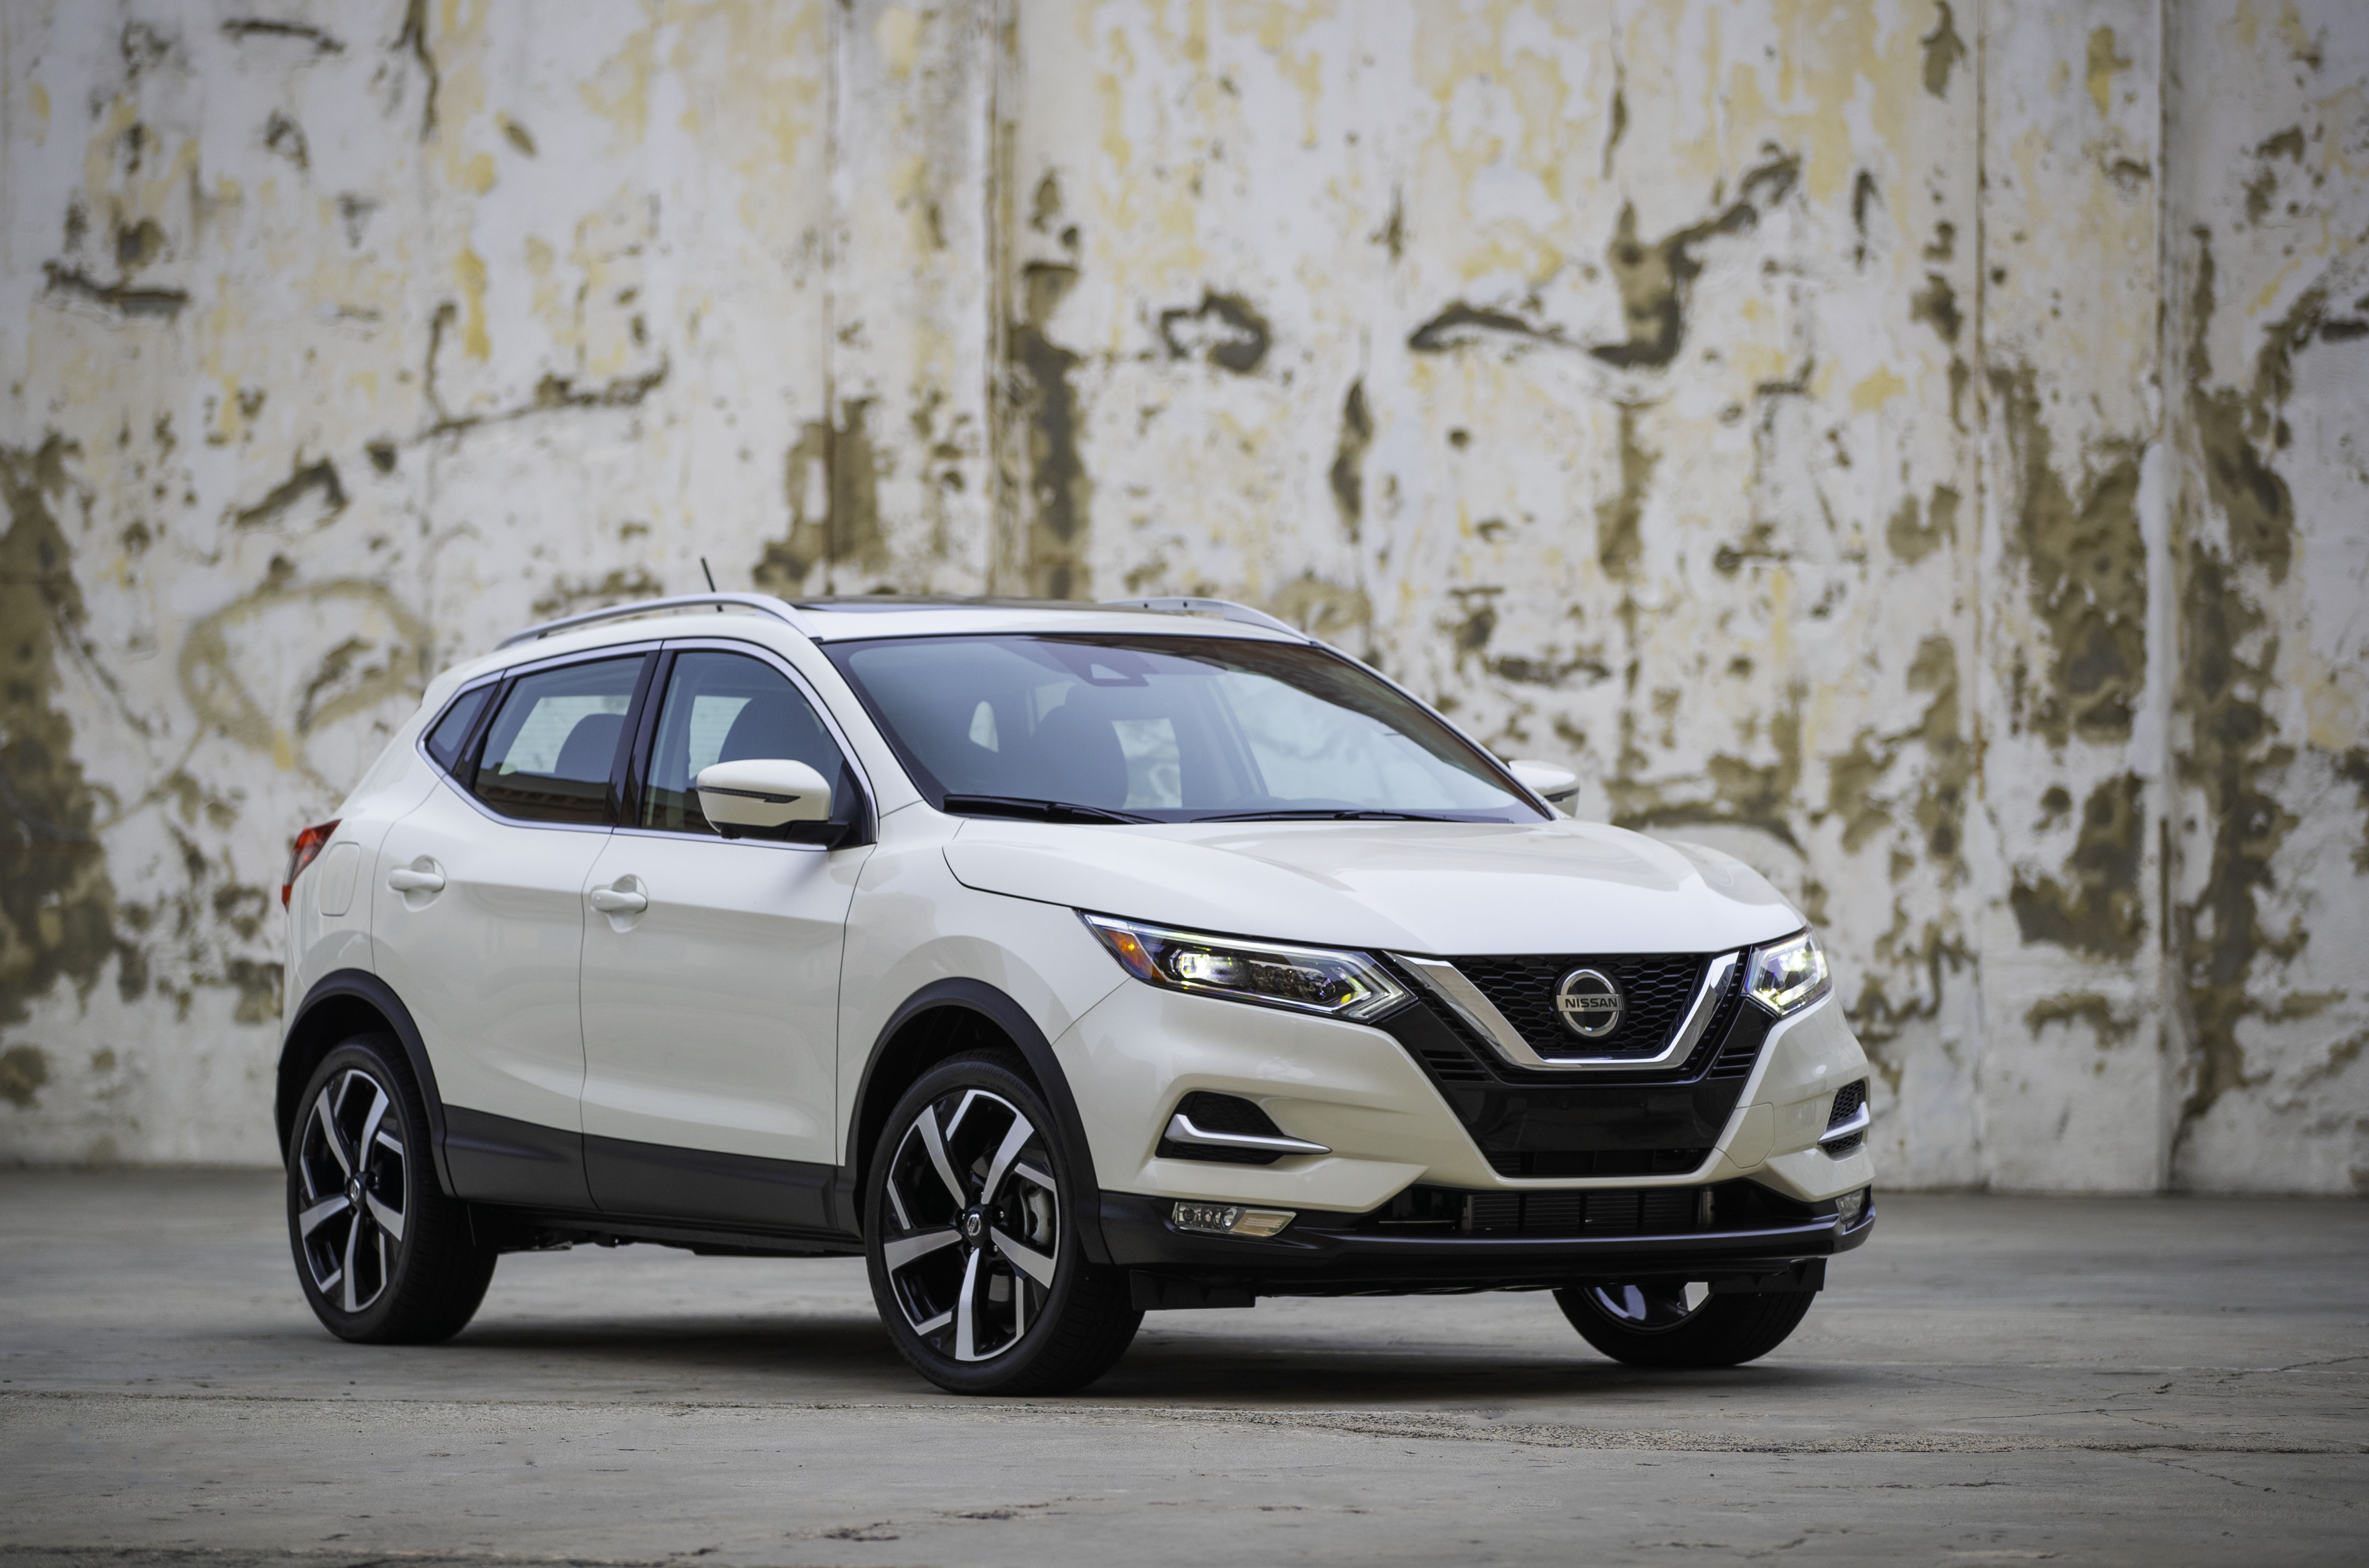 Exterior image of the 2020 Nissan Qashqai | Toronto, ON